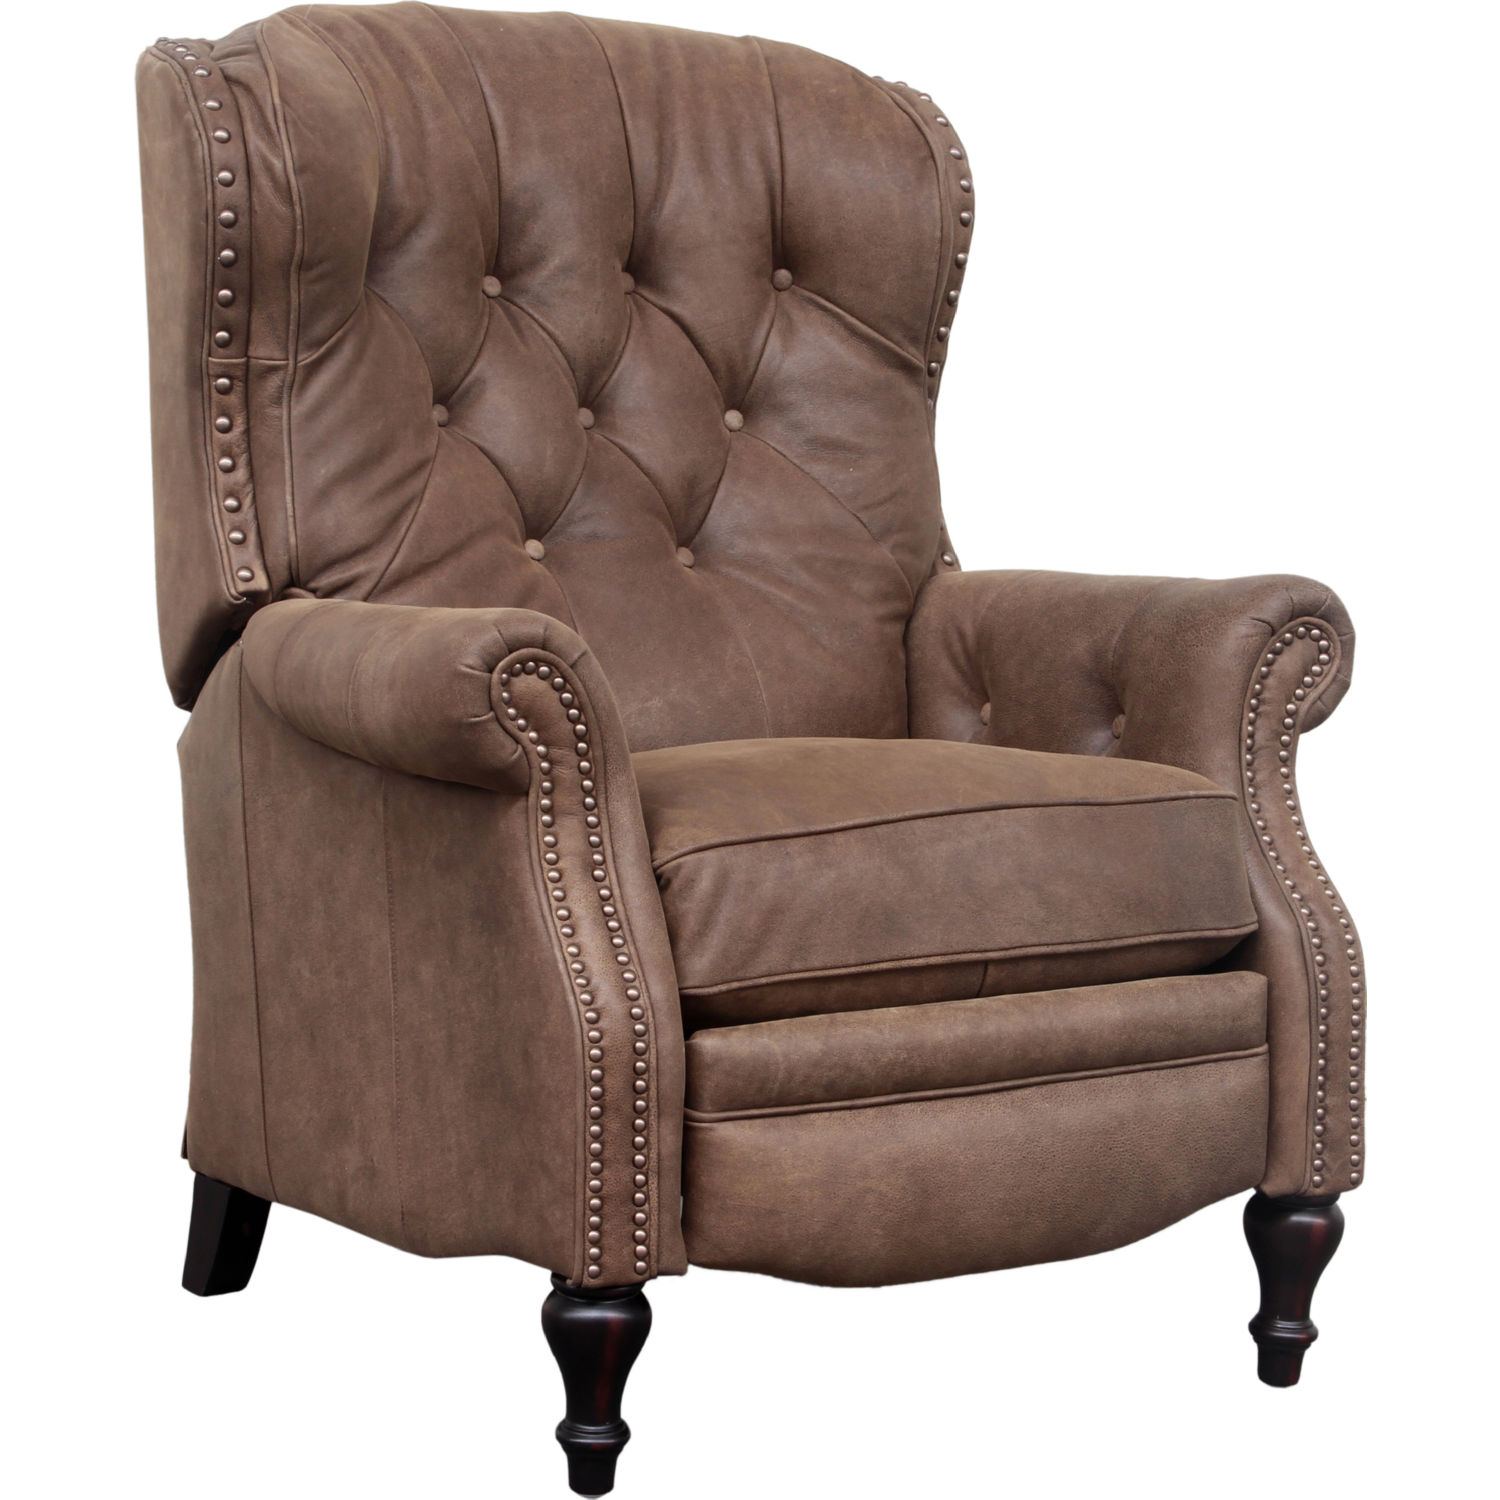 BarcaLounger Kendall Recliner in Tufted Sanded Dark